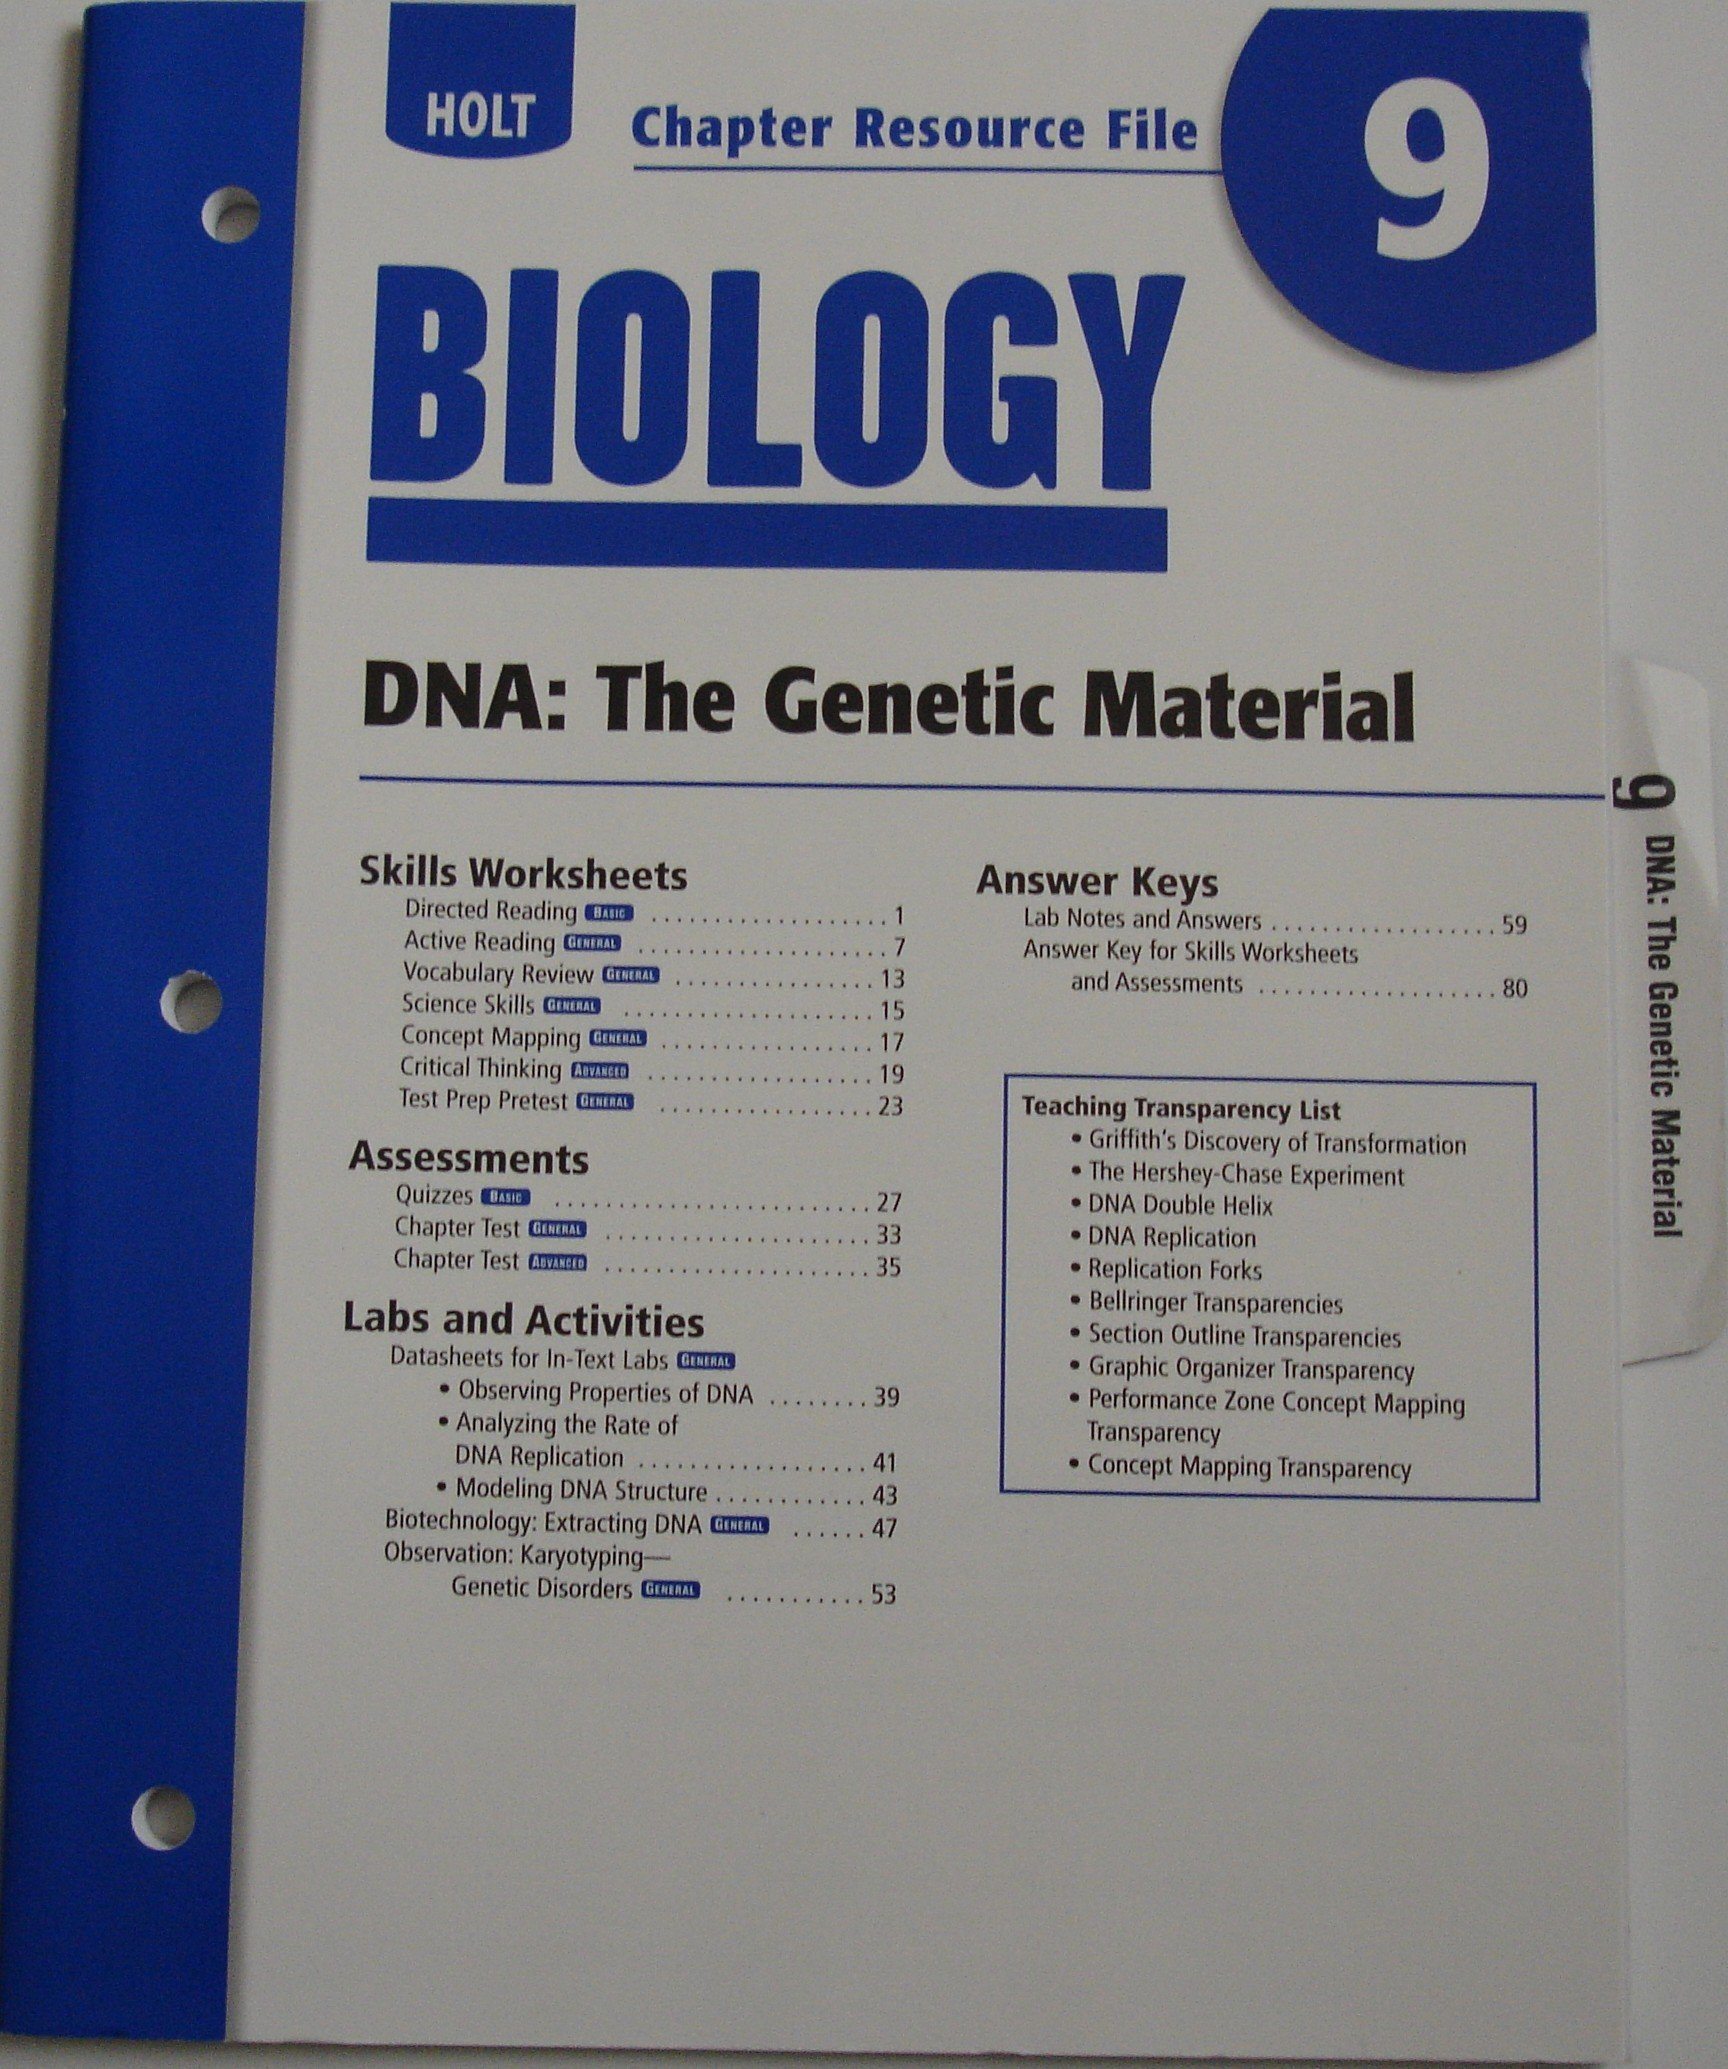 Worksheets Holt Biology Worksheets holt biology dna the genetic material chapter resource no 9 rinehart winston 9780030413735 amazon com books